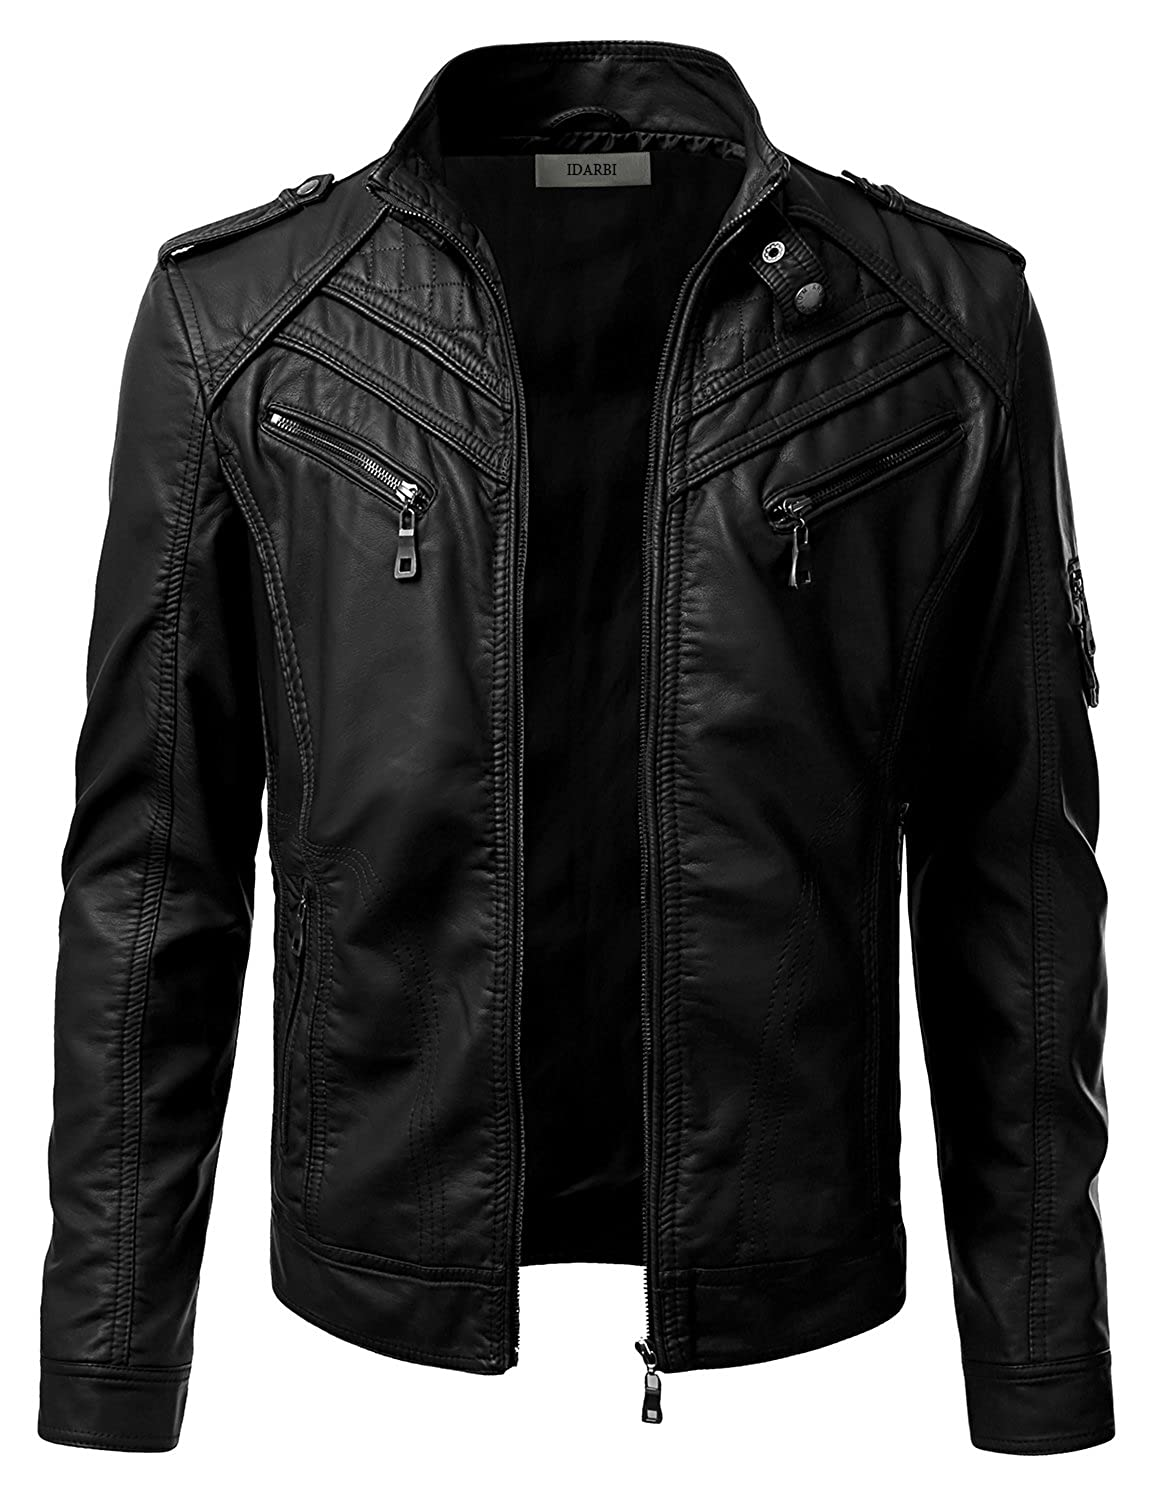 IDARBI Mens Long Sleeve Premium Stand Collar Zip Up Faux Leather Jacket